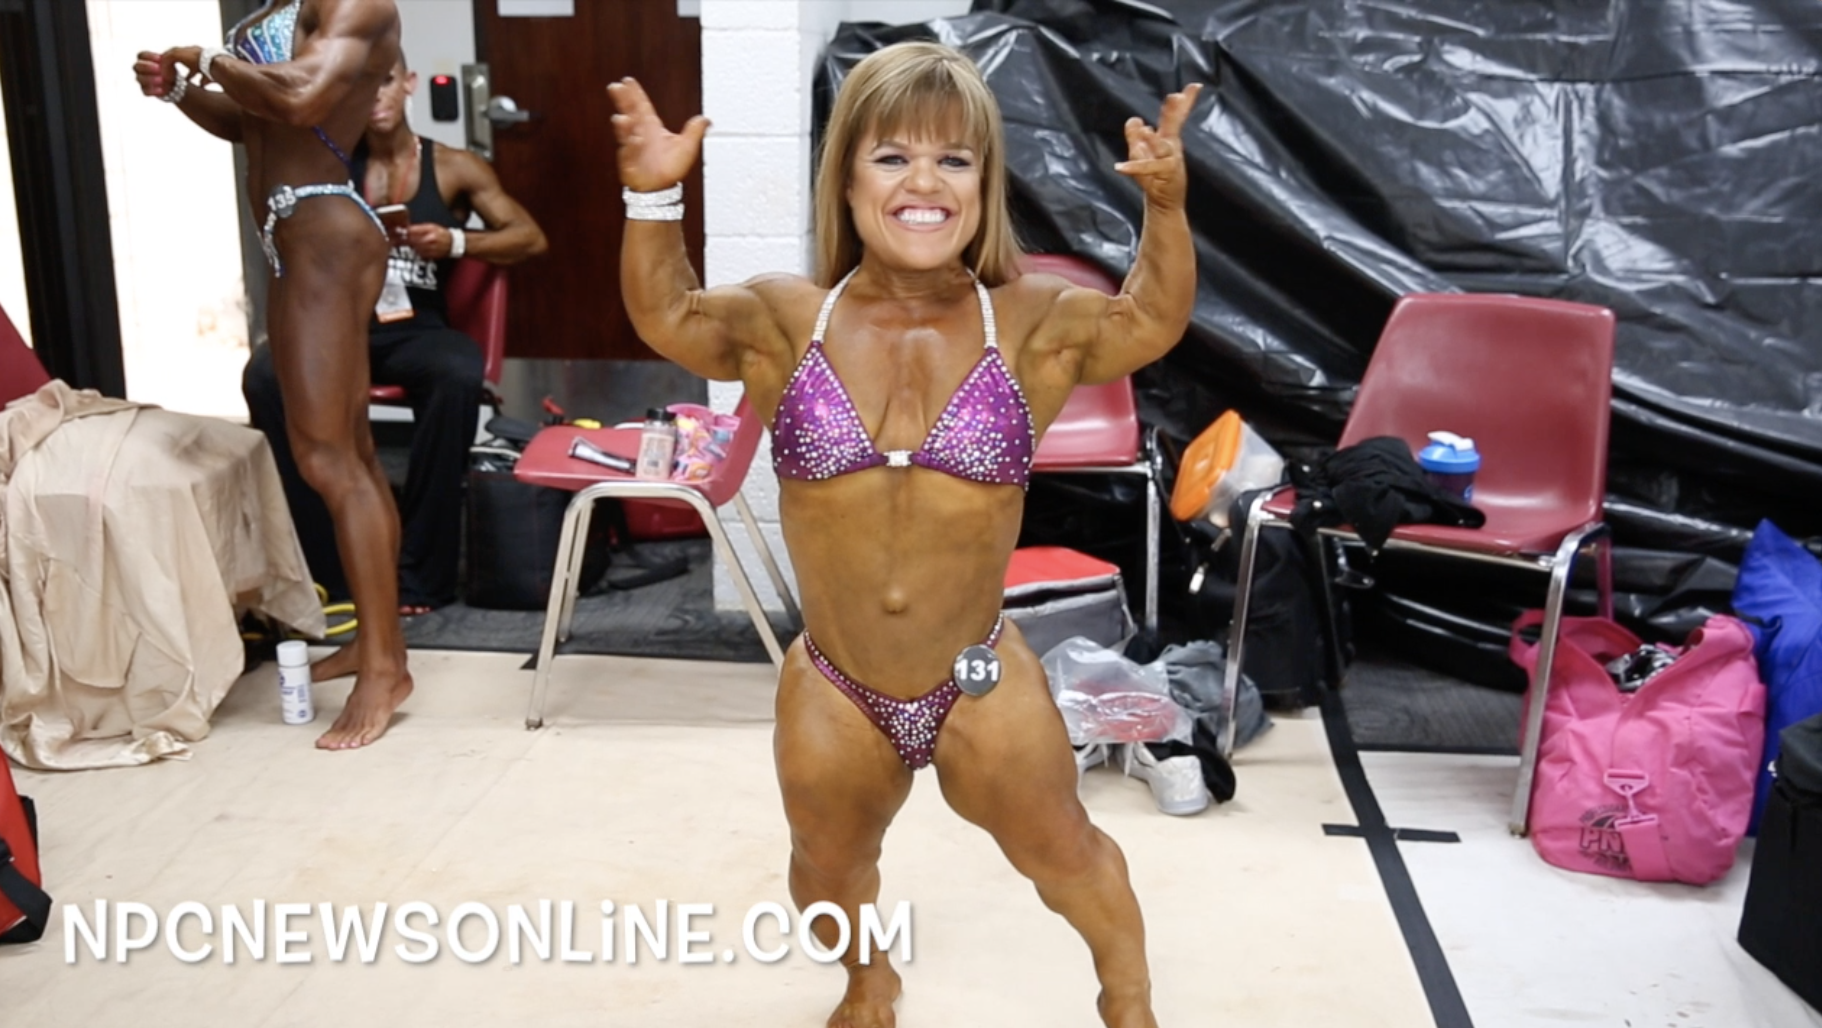 2017 NPC USA Women's Physique Backstage Video